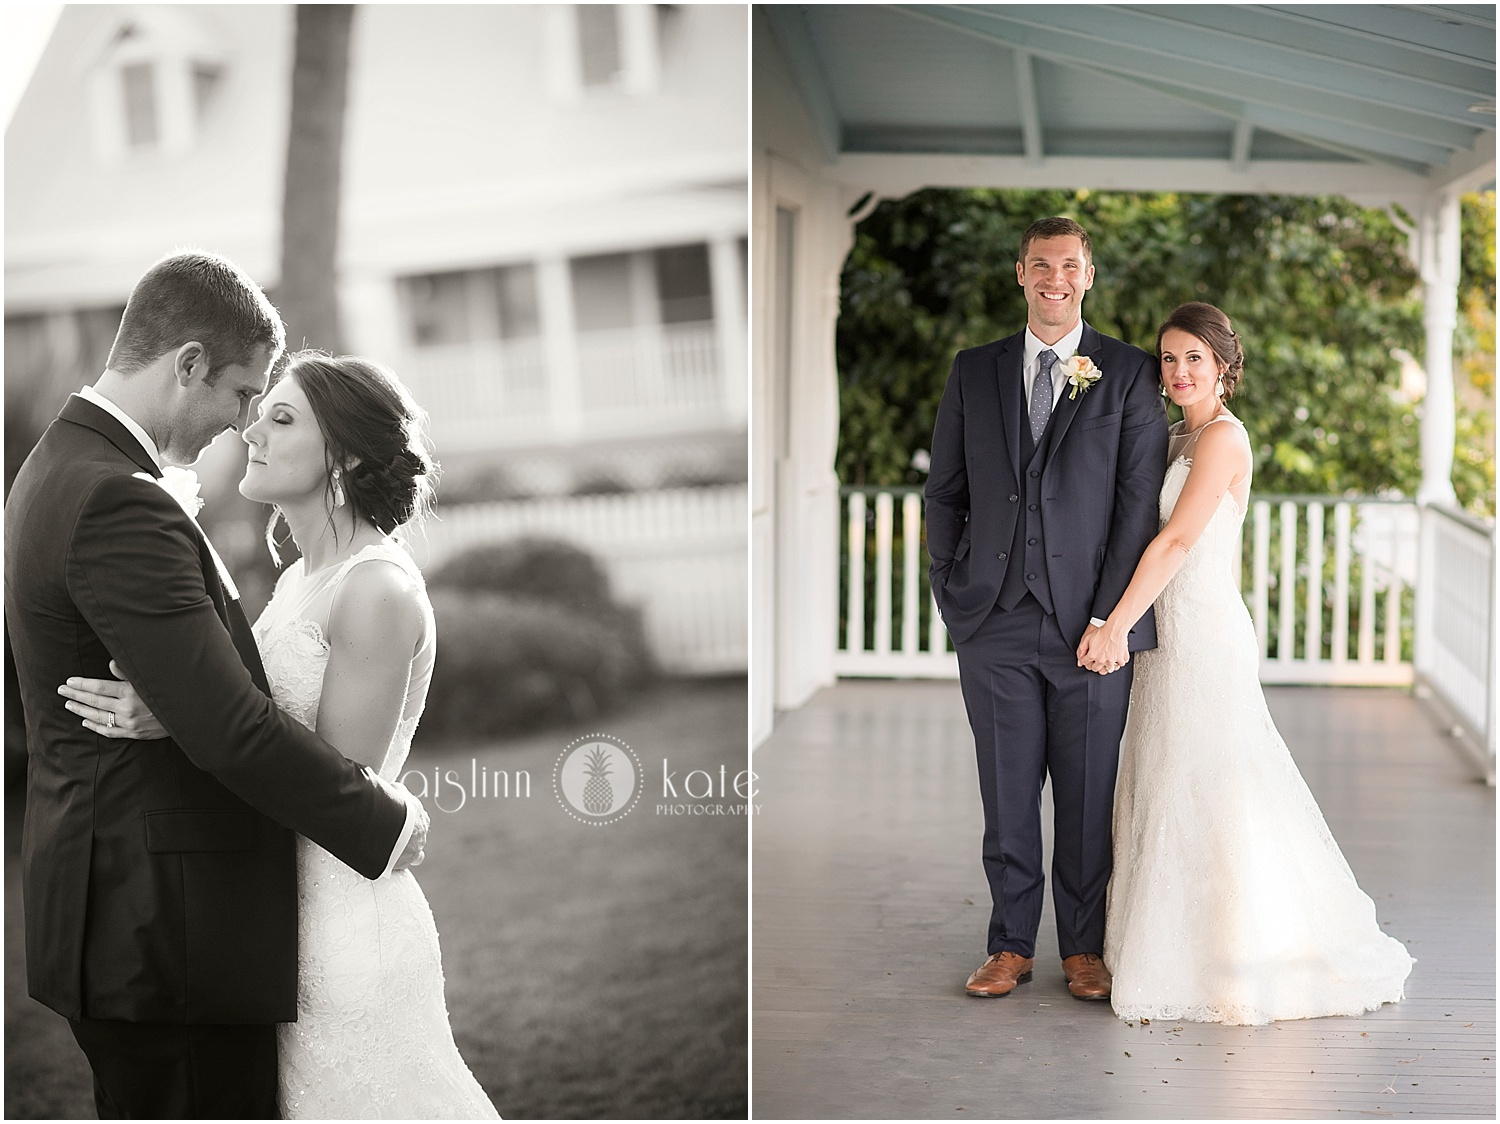 Pensacola-Wedding-Photographer-067.jpg